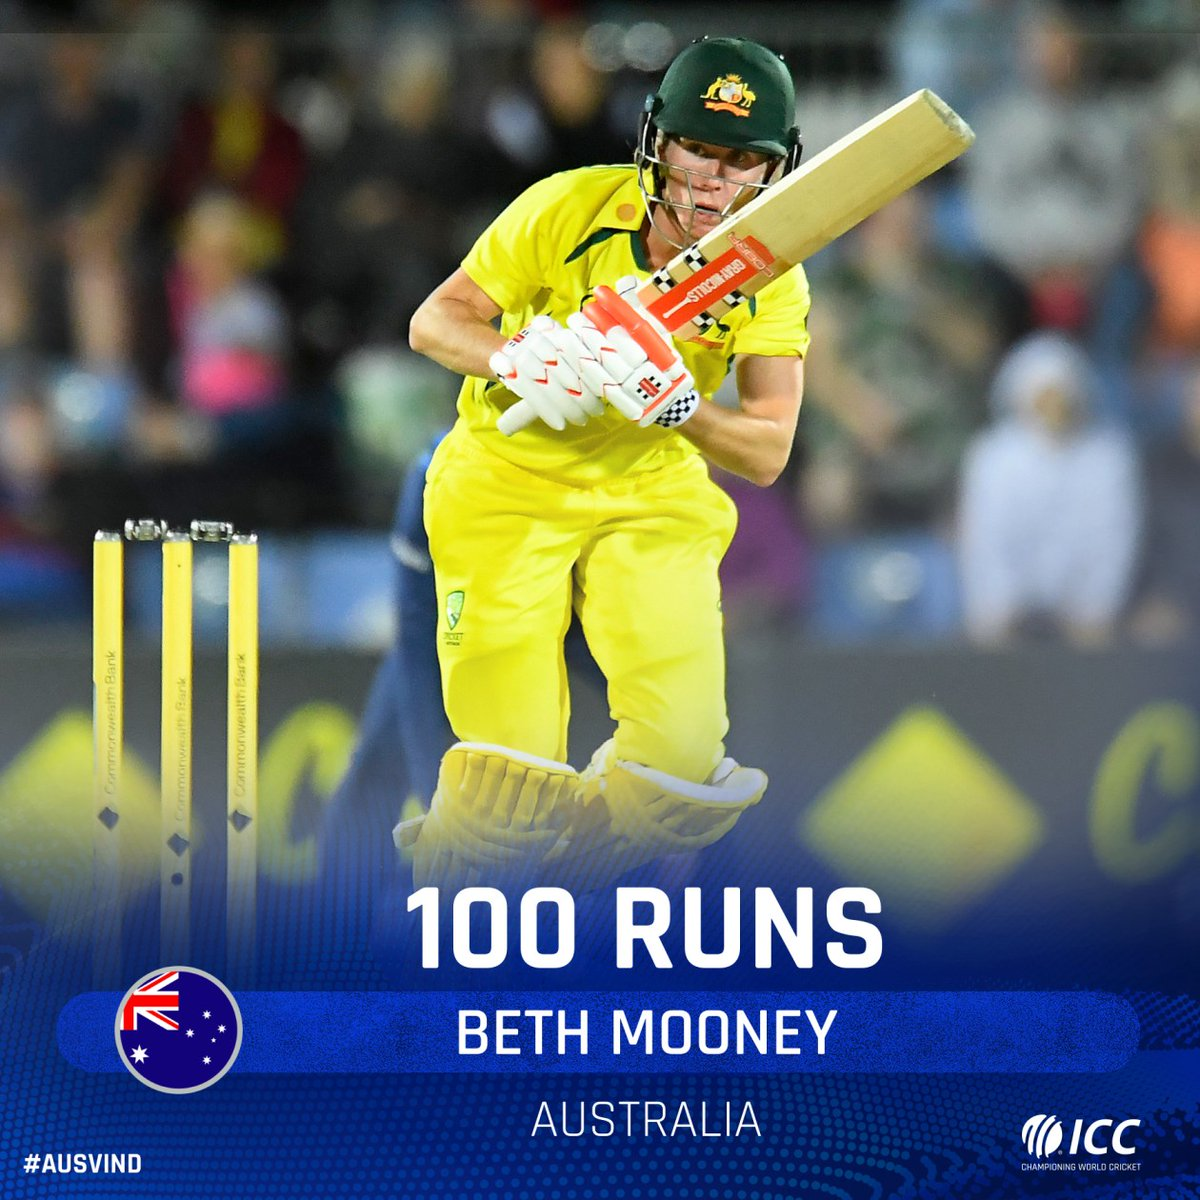 Second ODI hundred for Beth Mooney and what a time to bring it up!  Can she finish it off for Australia?  📺 Watch the action on https://t.co/CPDKNx77KV (select regions) 🧮 Follow live: https://t.co/PWbQVjuCNo   #AUSvIND https://t.co/7IZhvQfsBC